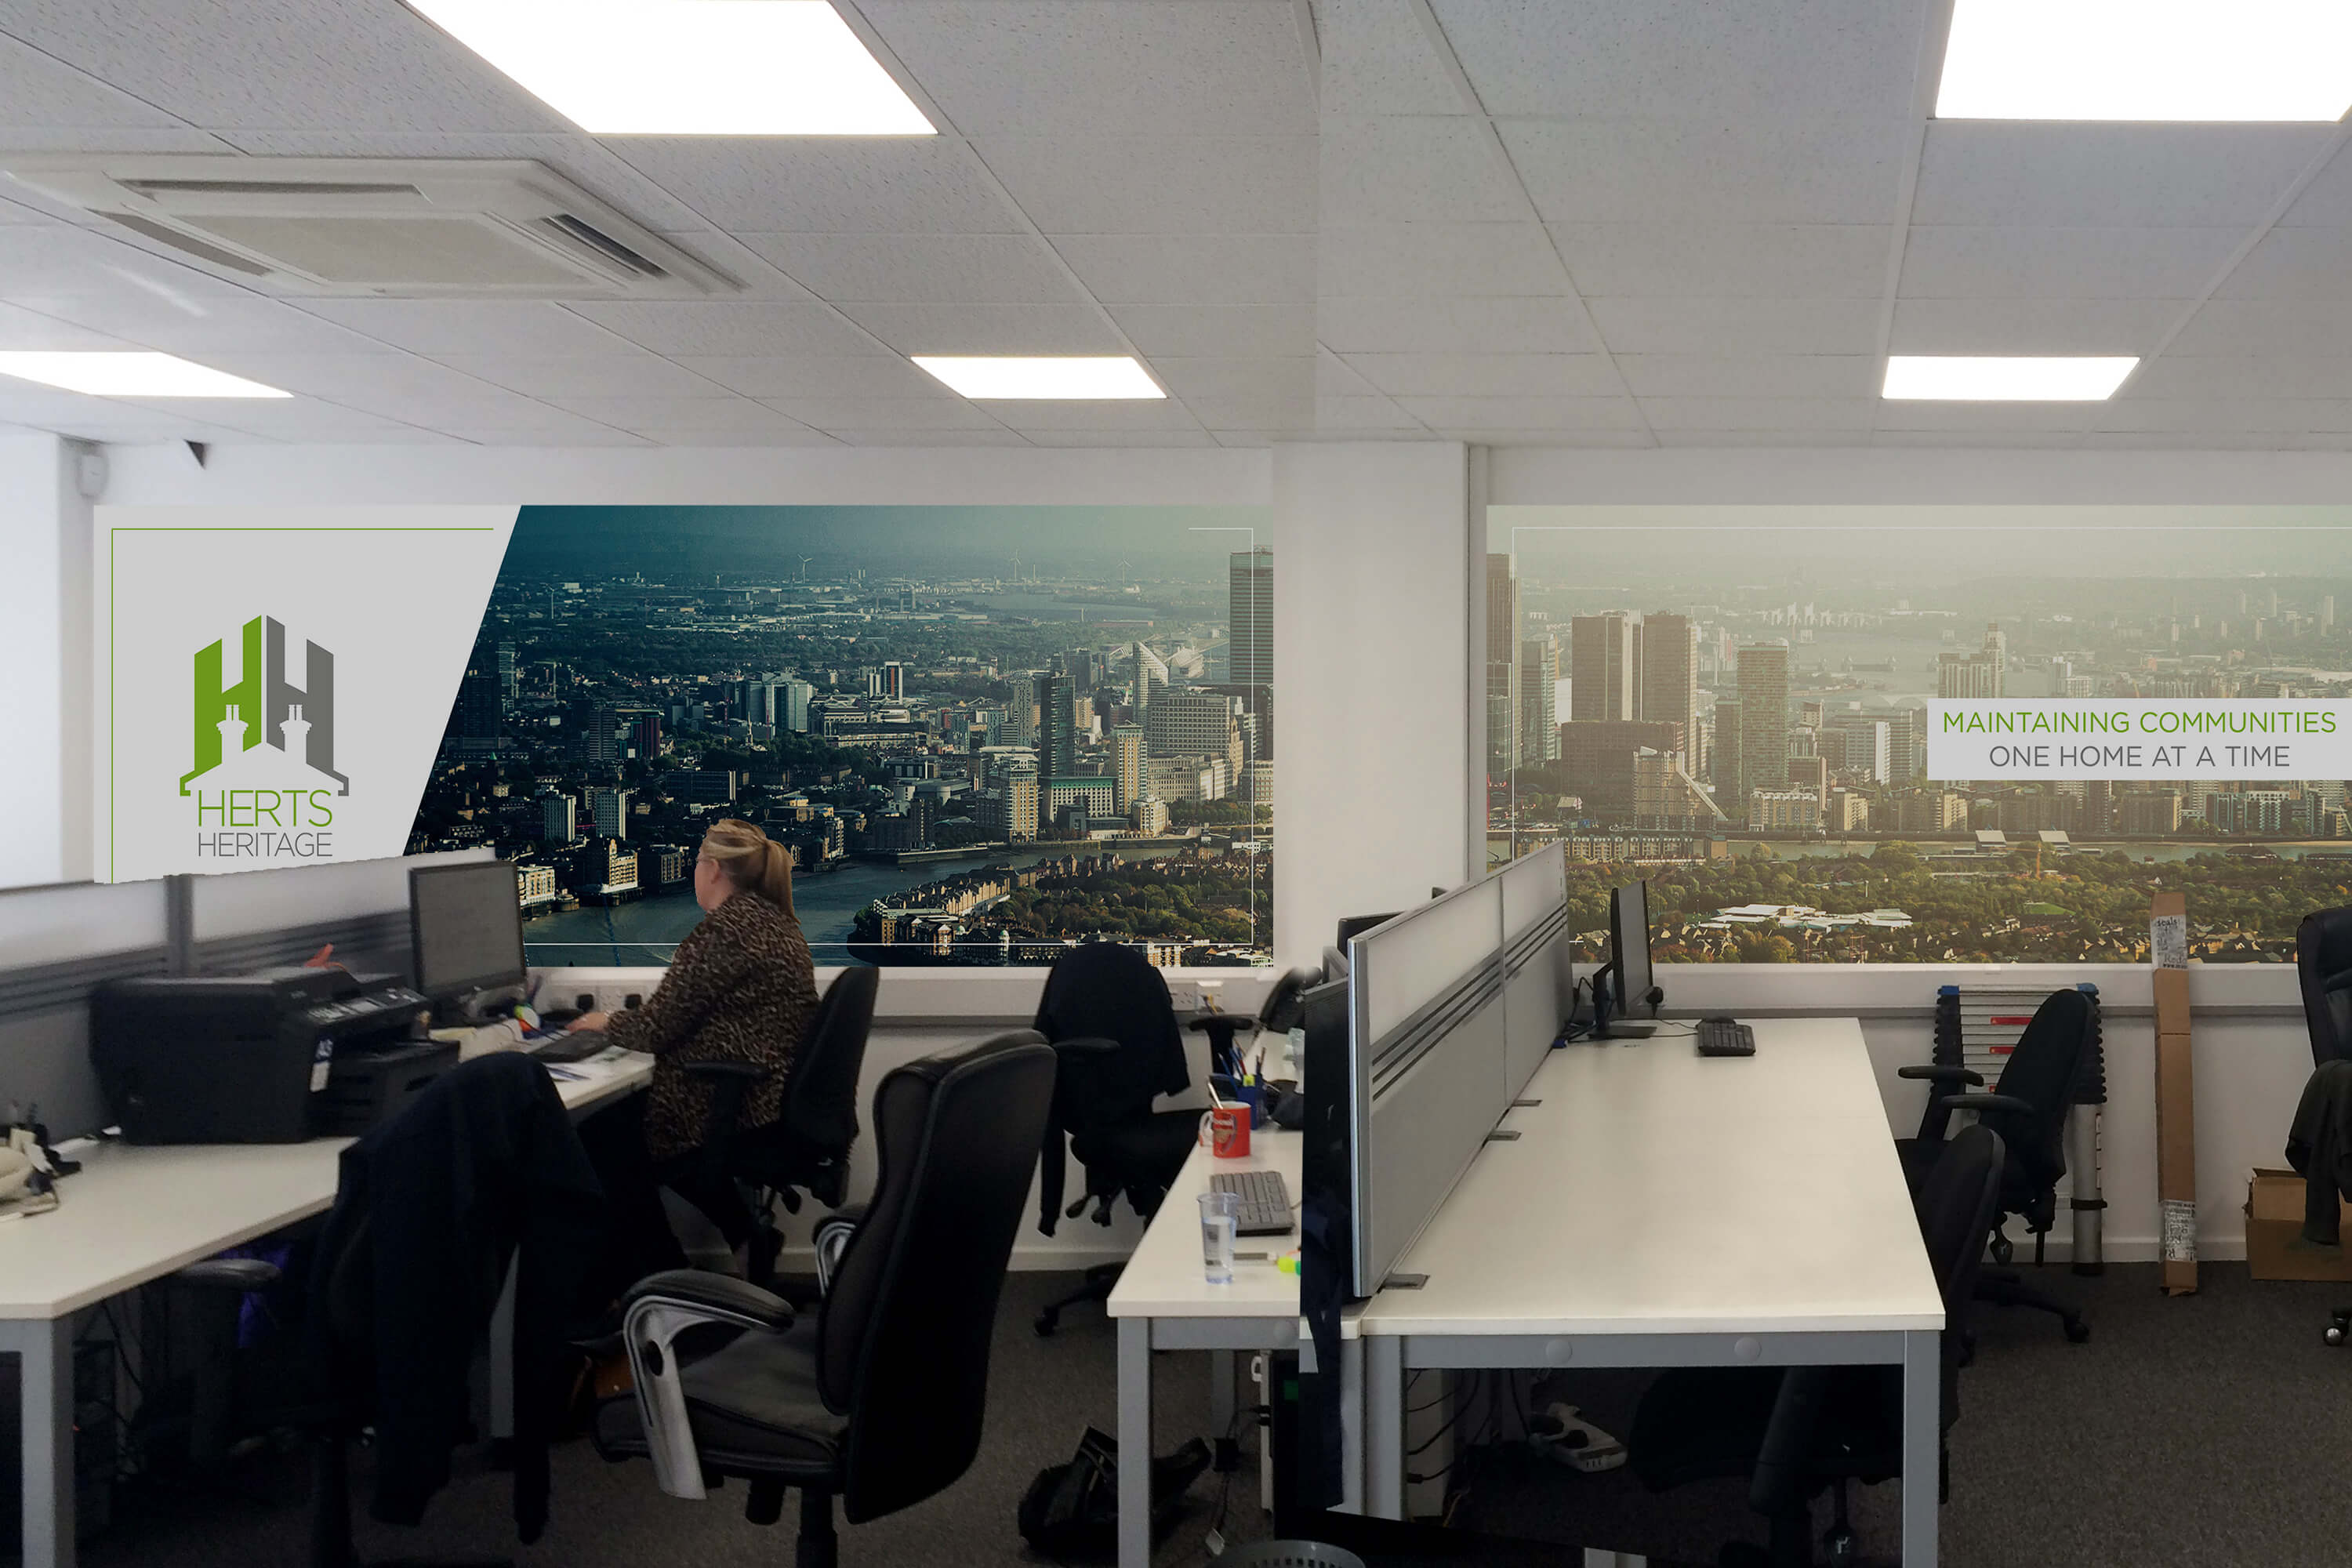 Internal office shot with design for Herts Heritage wall art in new rebrand style